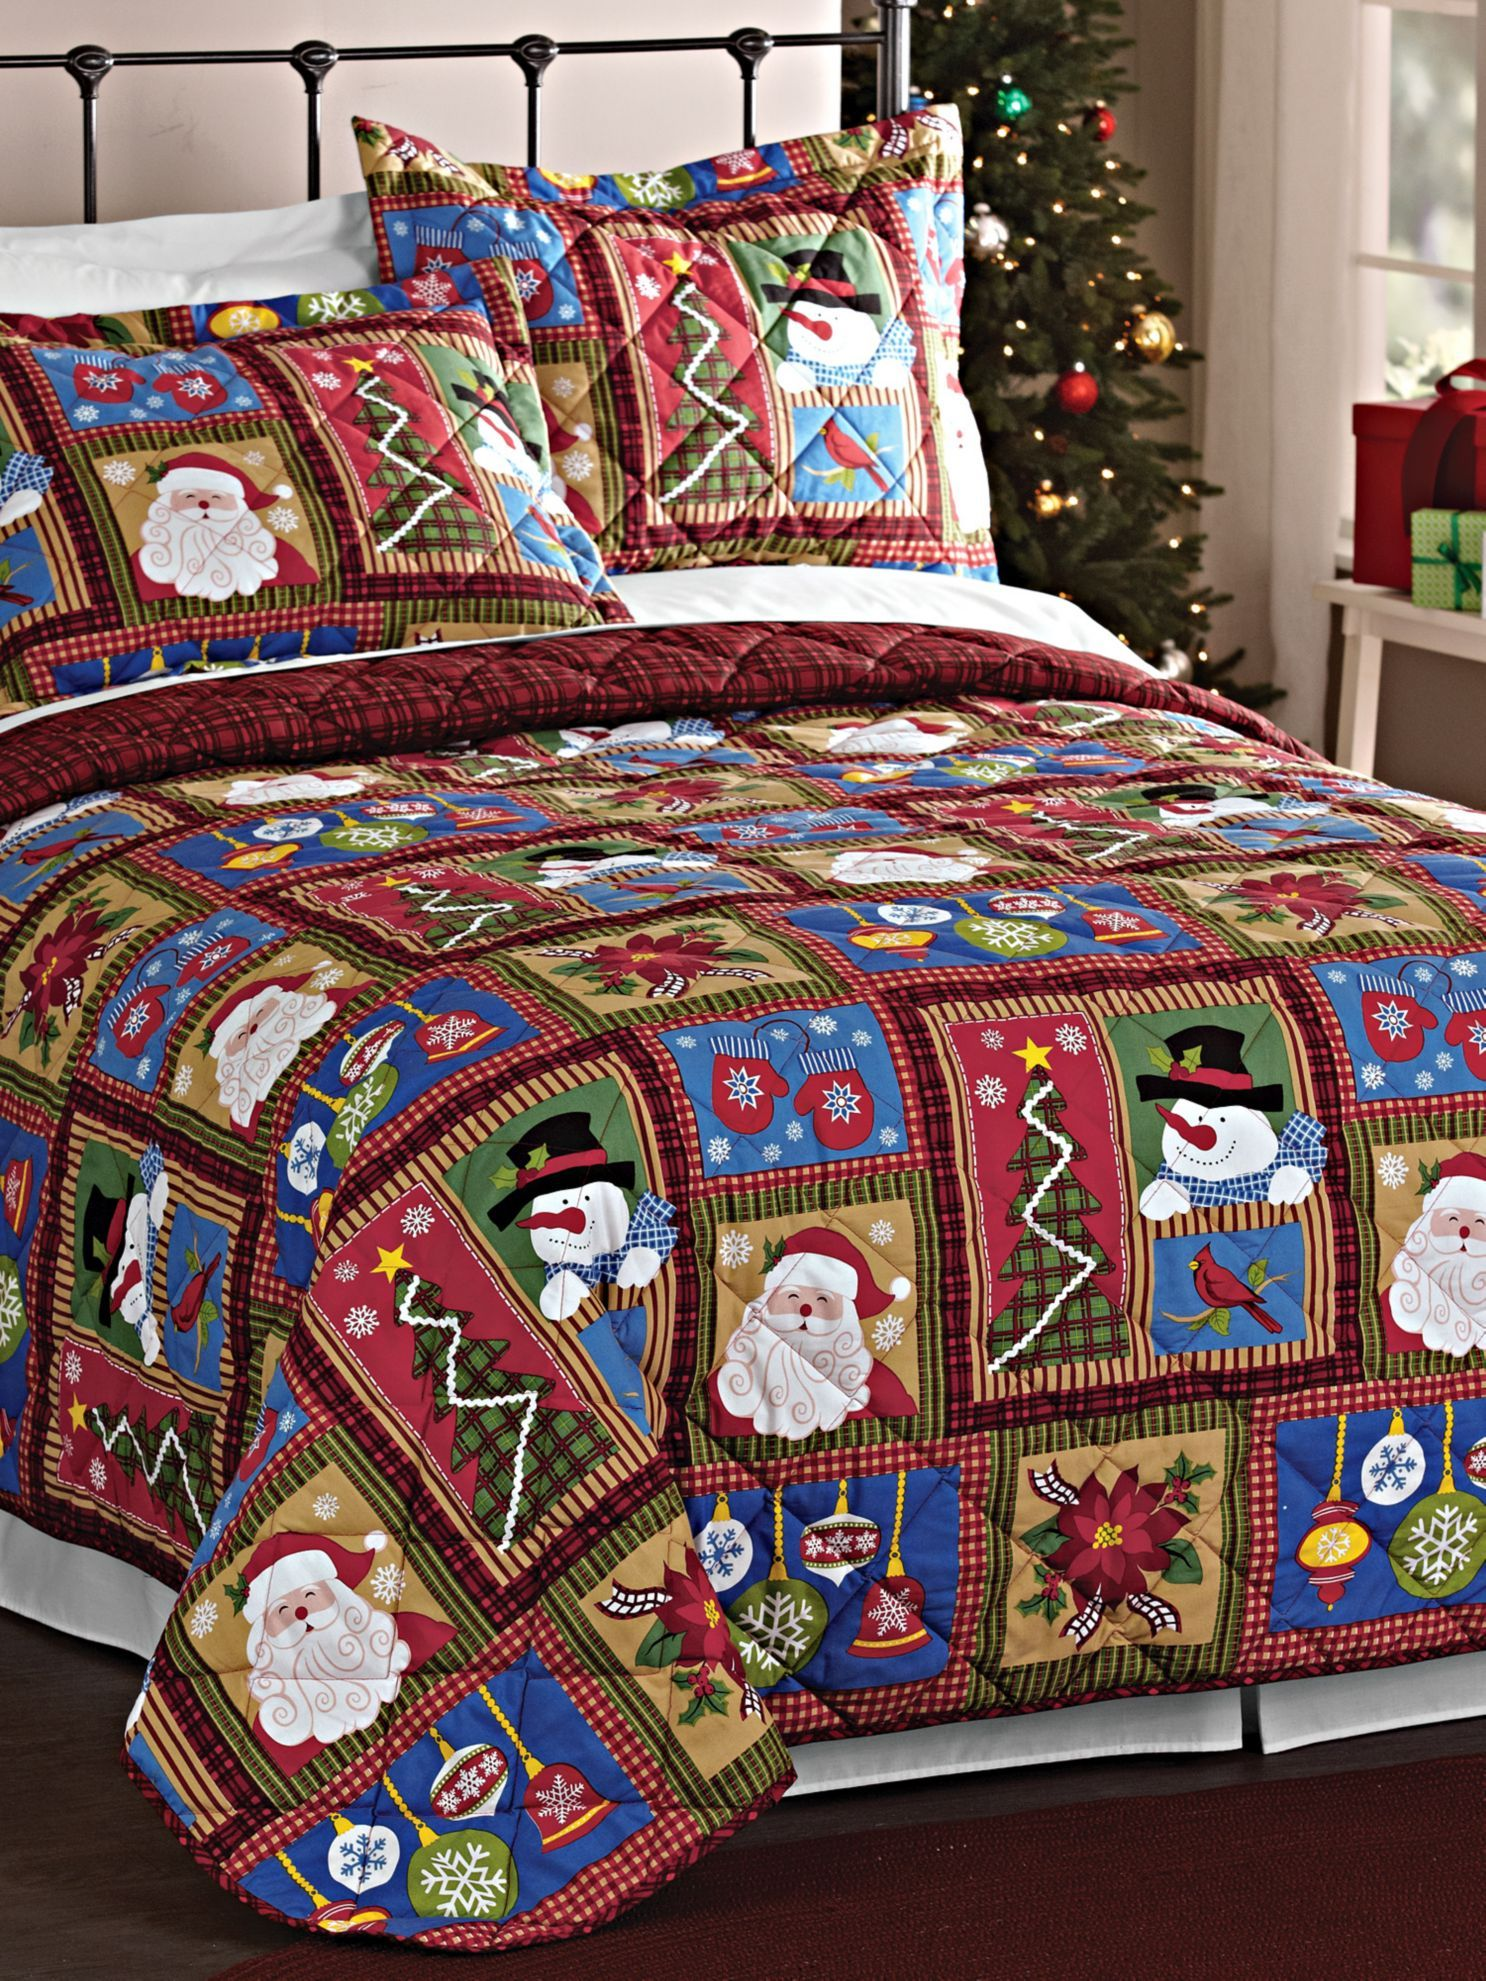 Holiday Patchwork Quilt Set Christmas Bedding Quilt